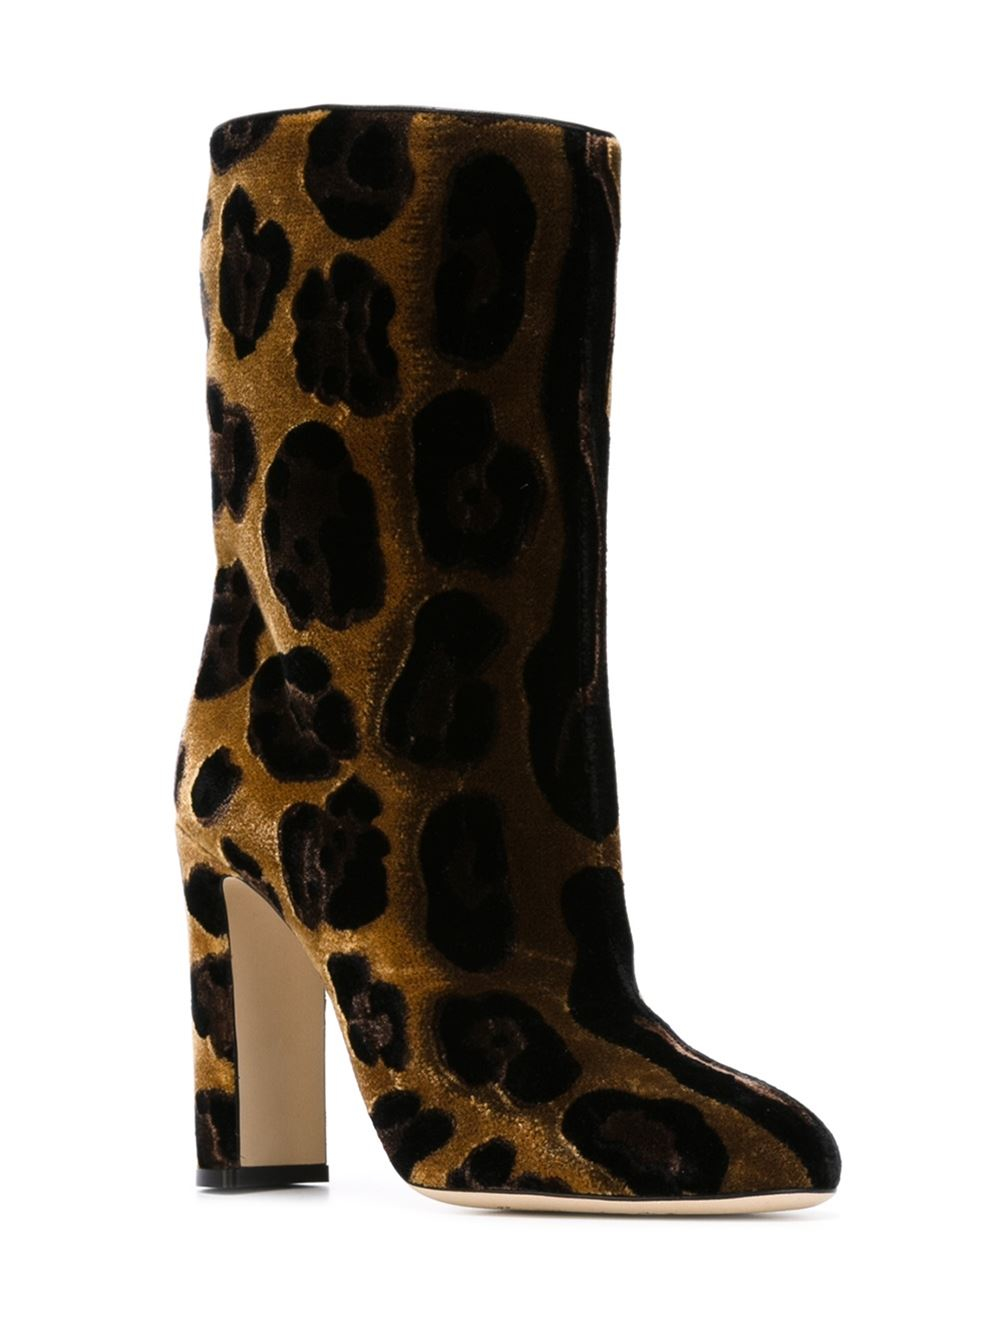 Free shipping BOTH ways on leopard boots, from our vast selection of styles. Fast delivery, and 24/7/ real-person service with a smile. Click or call